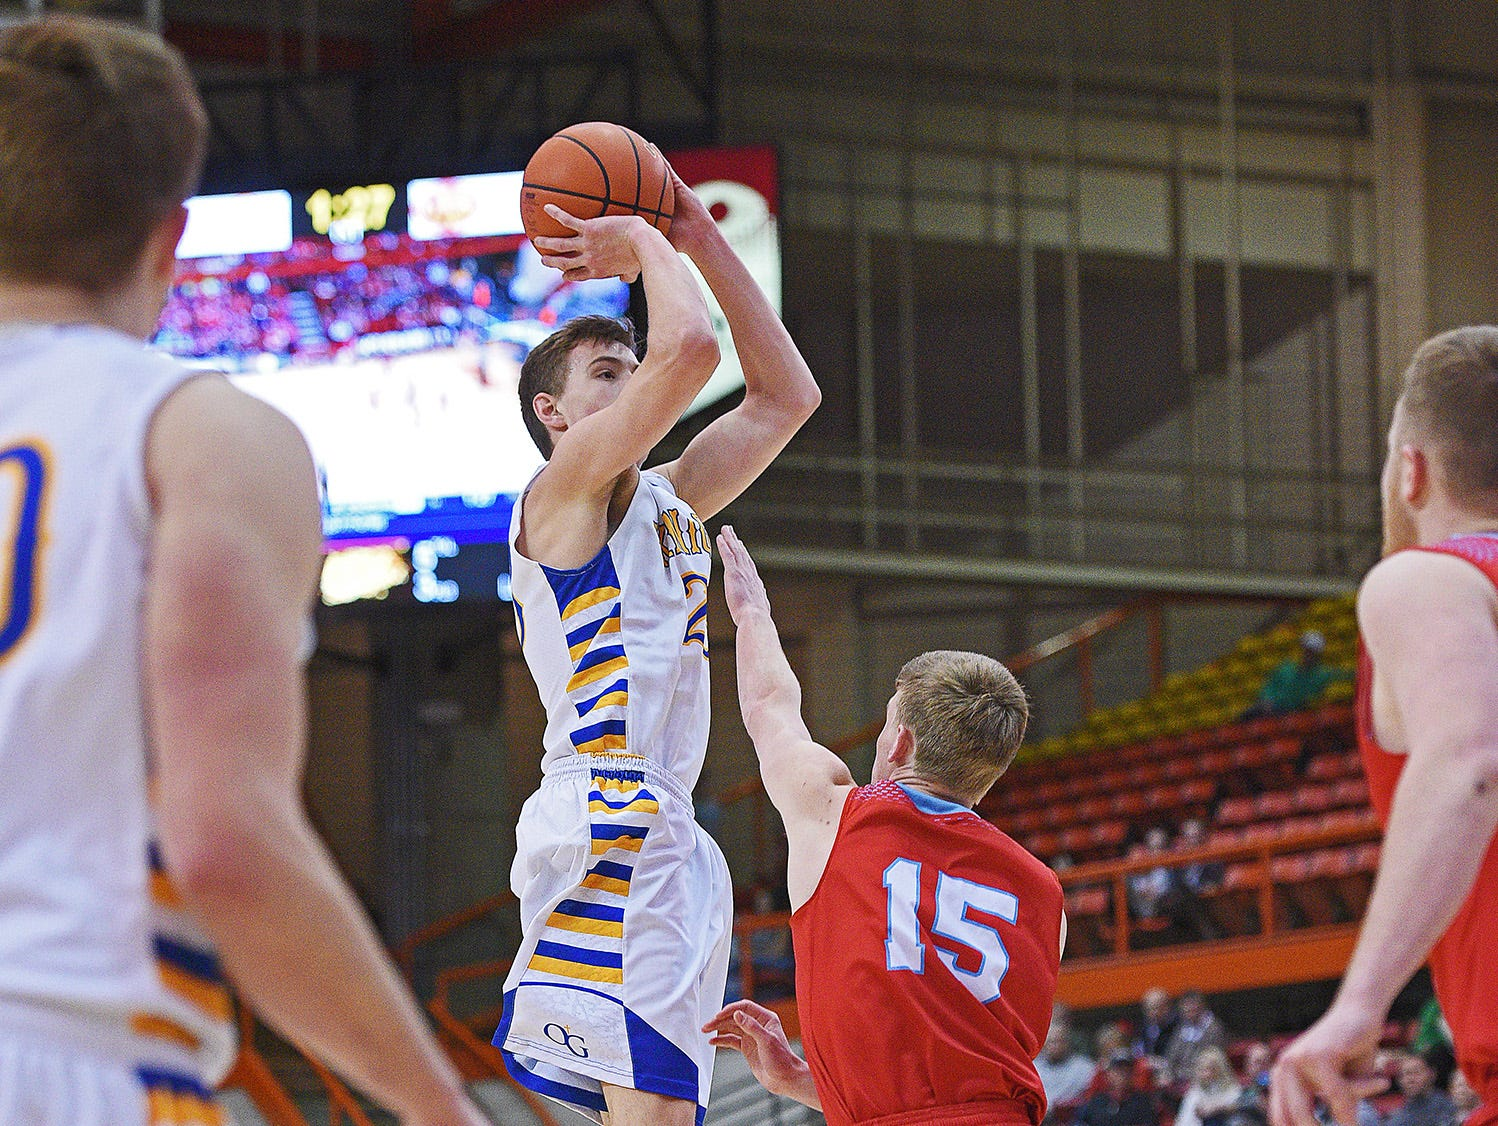 O'Gorman's Matt Cartwright (23) goes up for a shot over Lincoln's Alex Glanzer (15) during a 2017 SDHSAA Class AA State Boys Basketball semifinal game Friday, March 17, 2017, at Rushmore Plaza Civic Center in Rapid City.